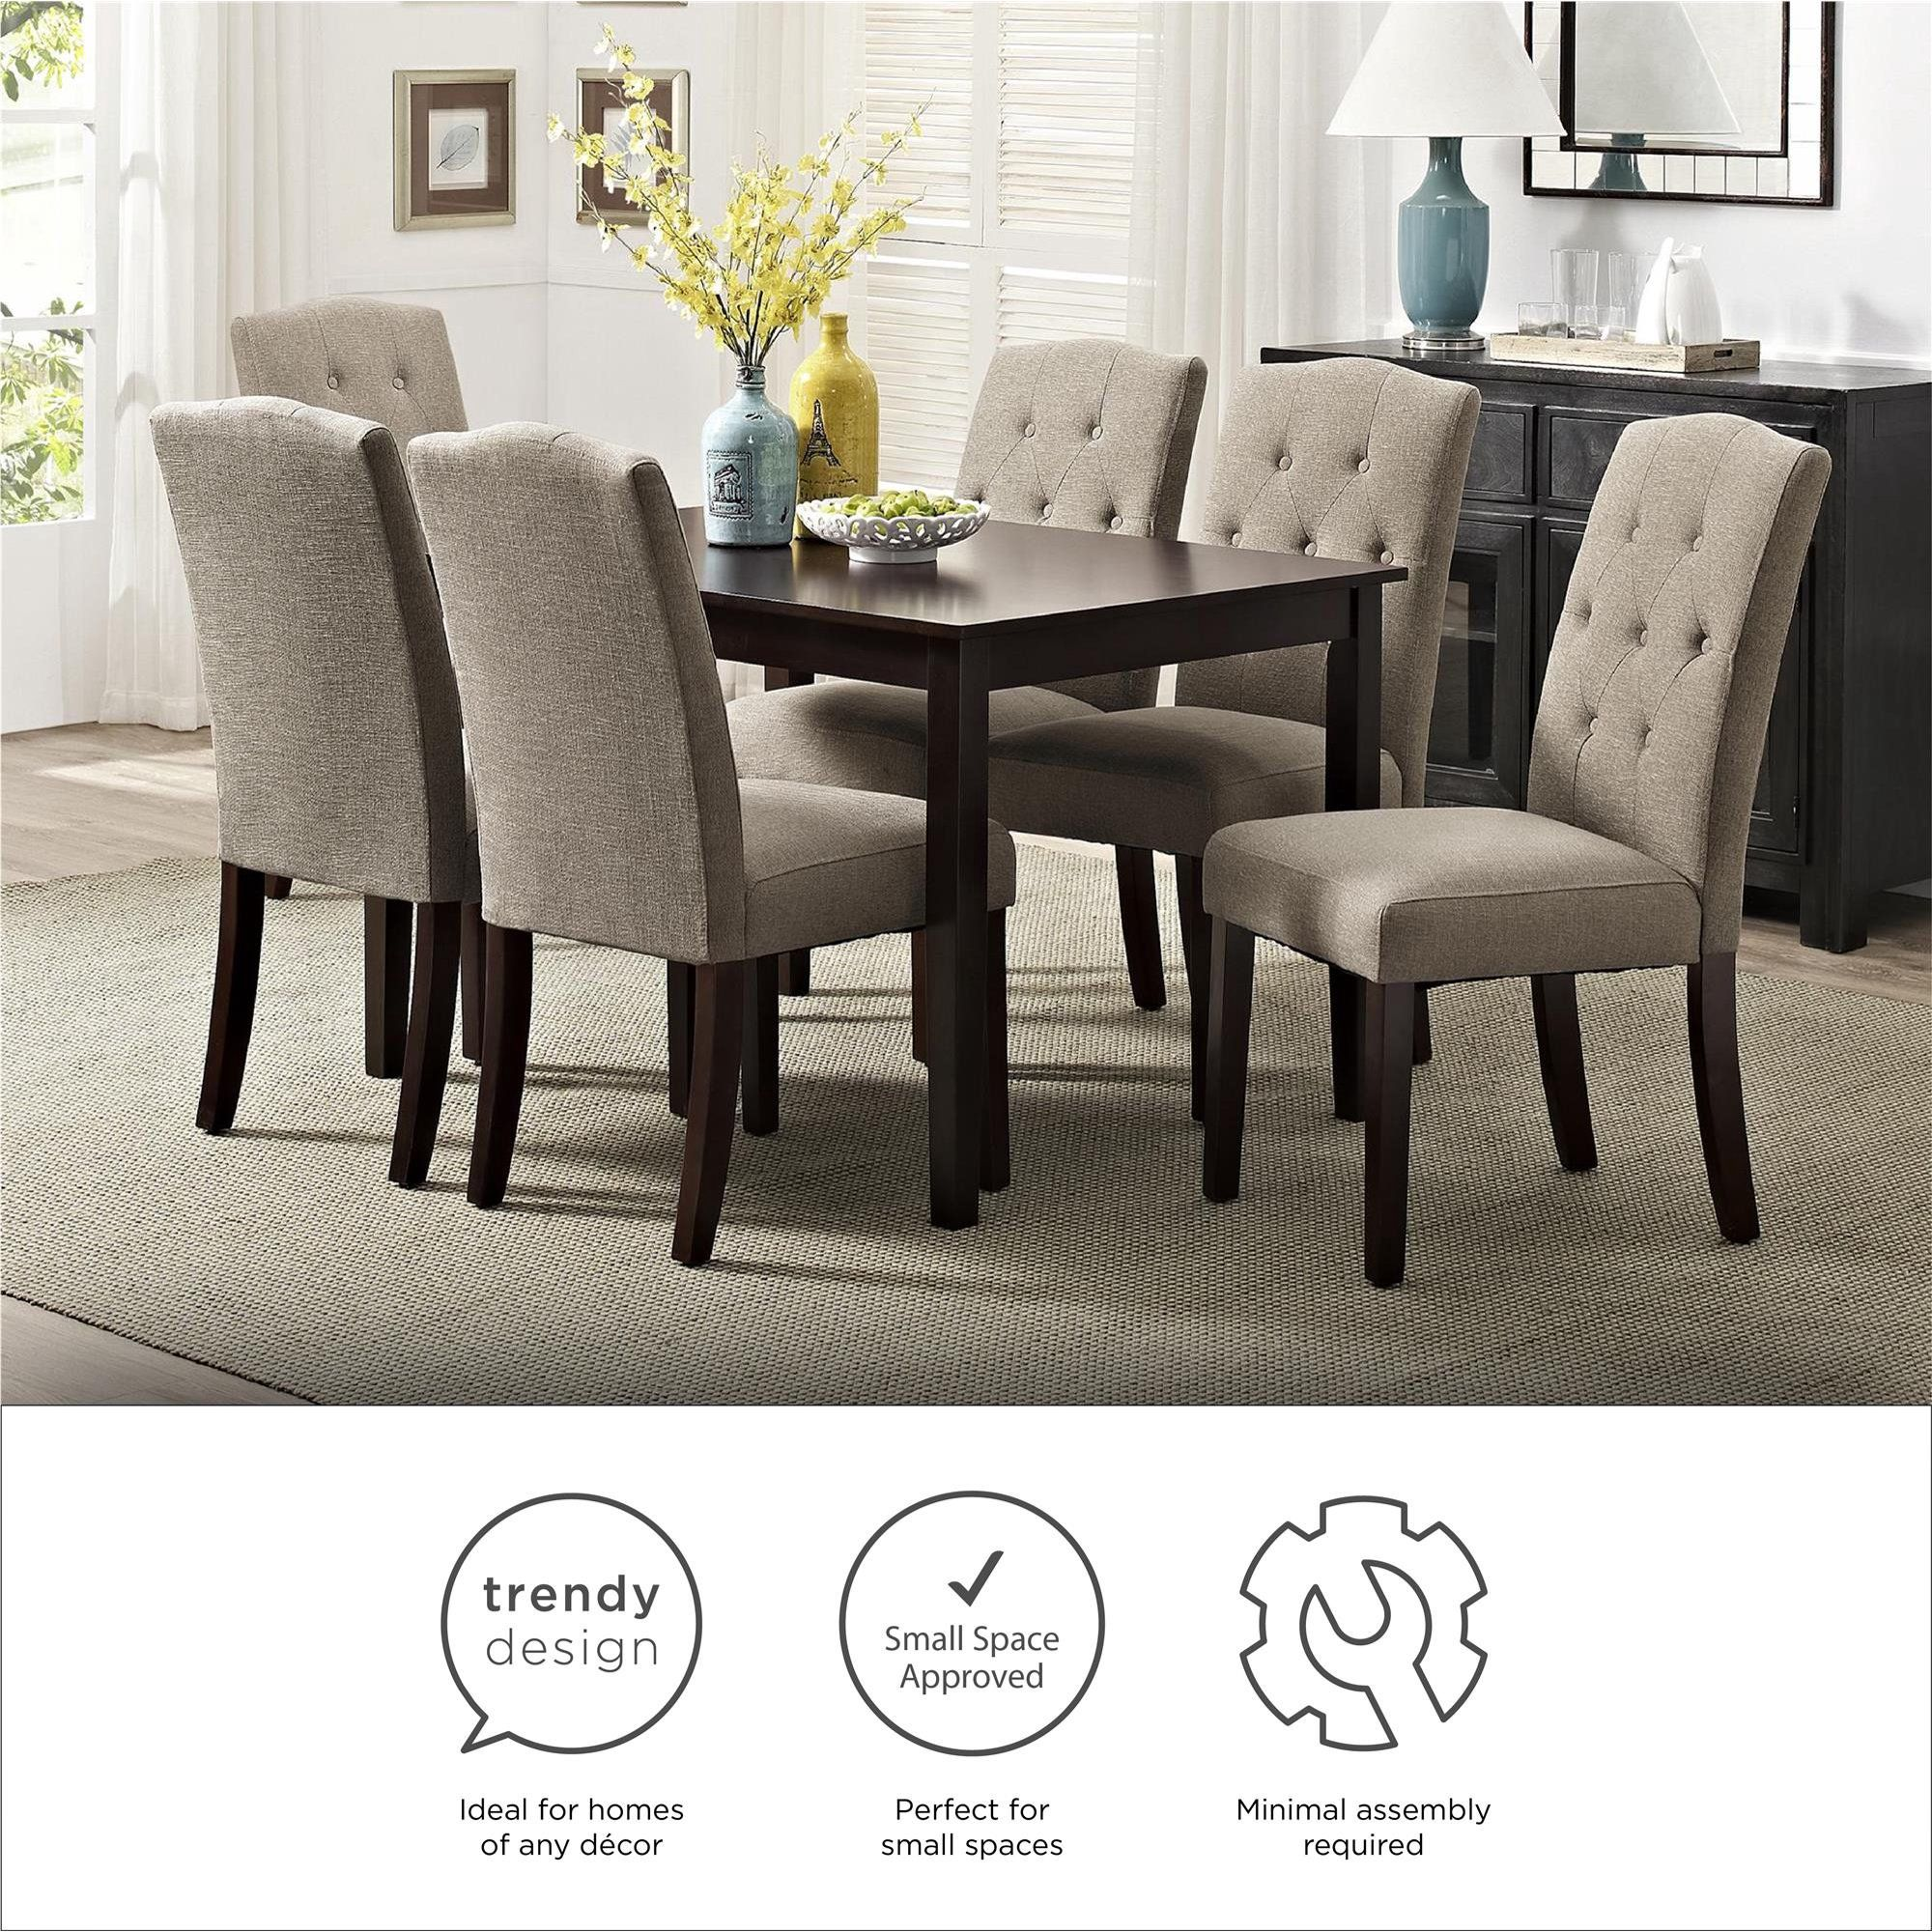 ff902ebd21a93a9bcdcc4e9073c9520d - Better Homes And Gardens Parsons Tufted Dining Chair Beige